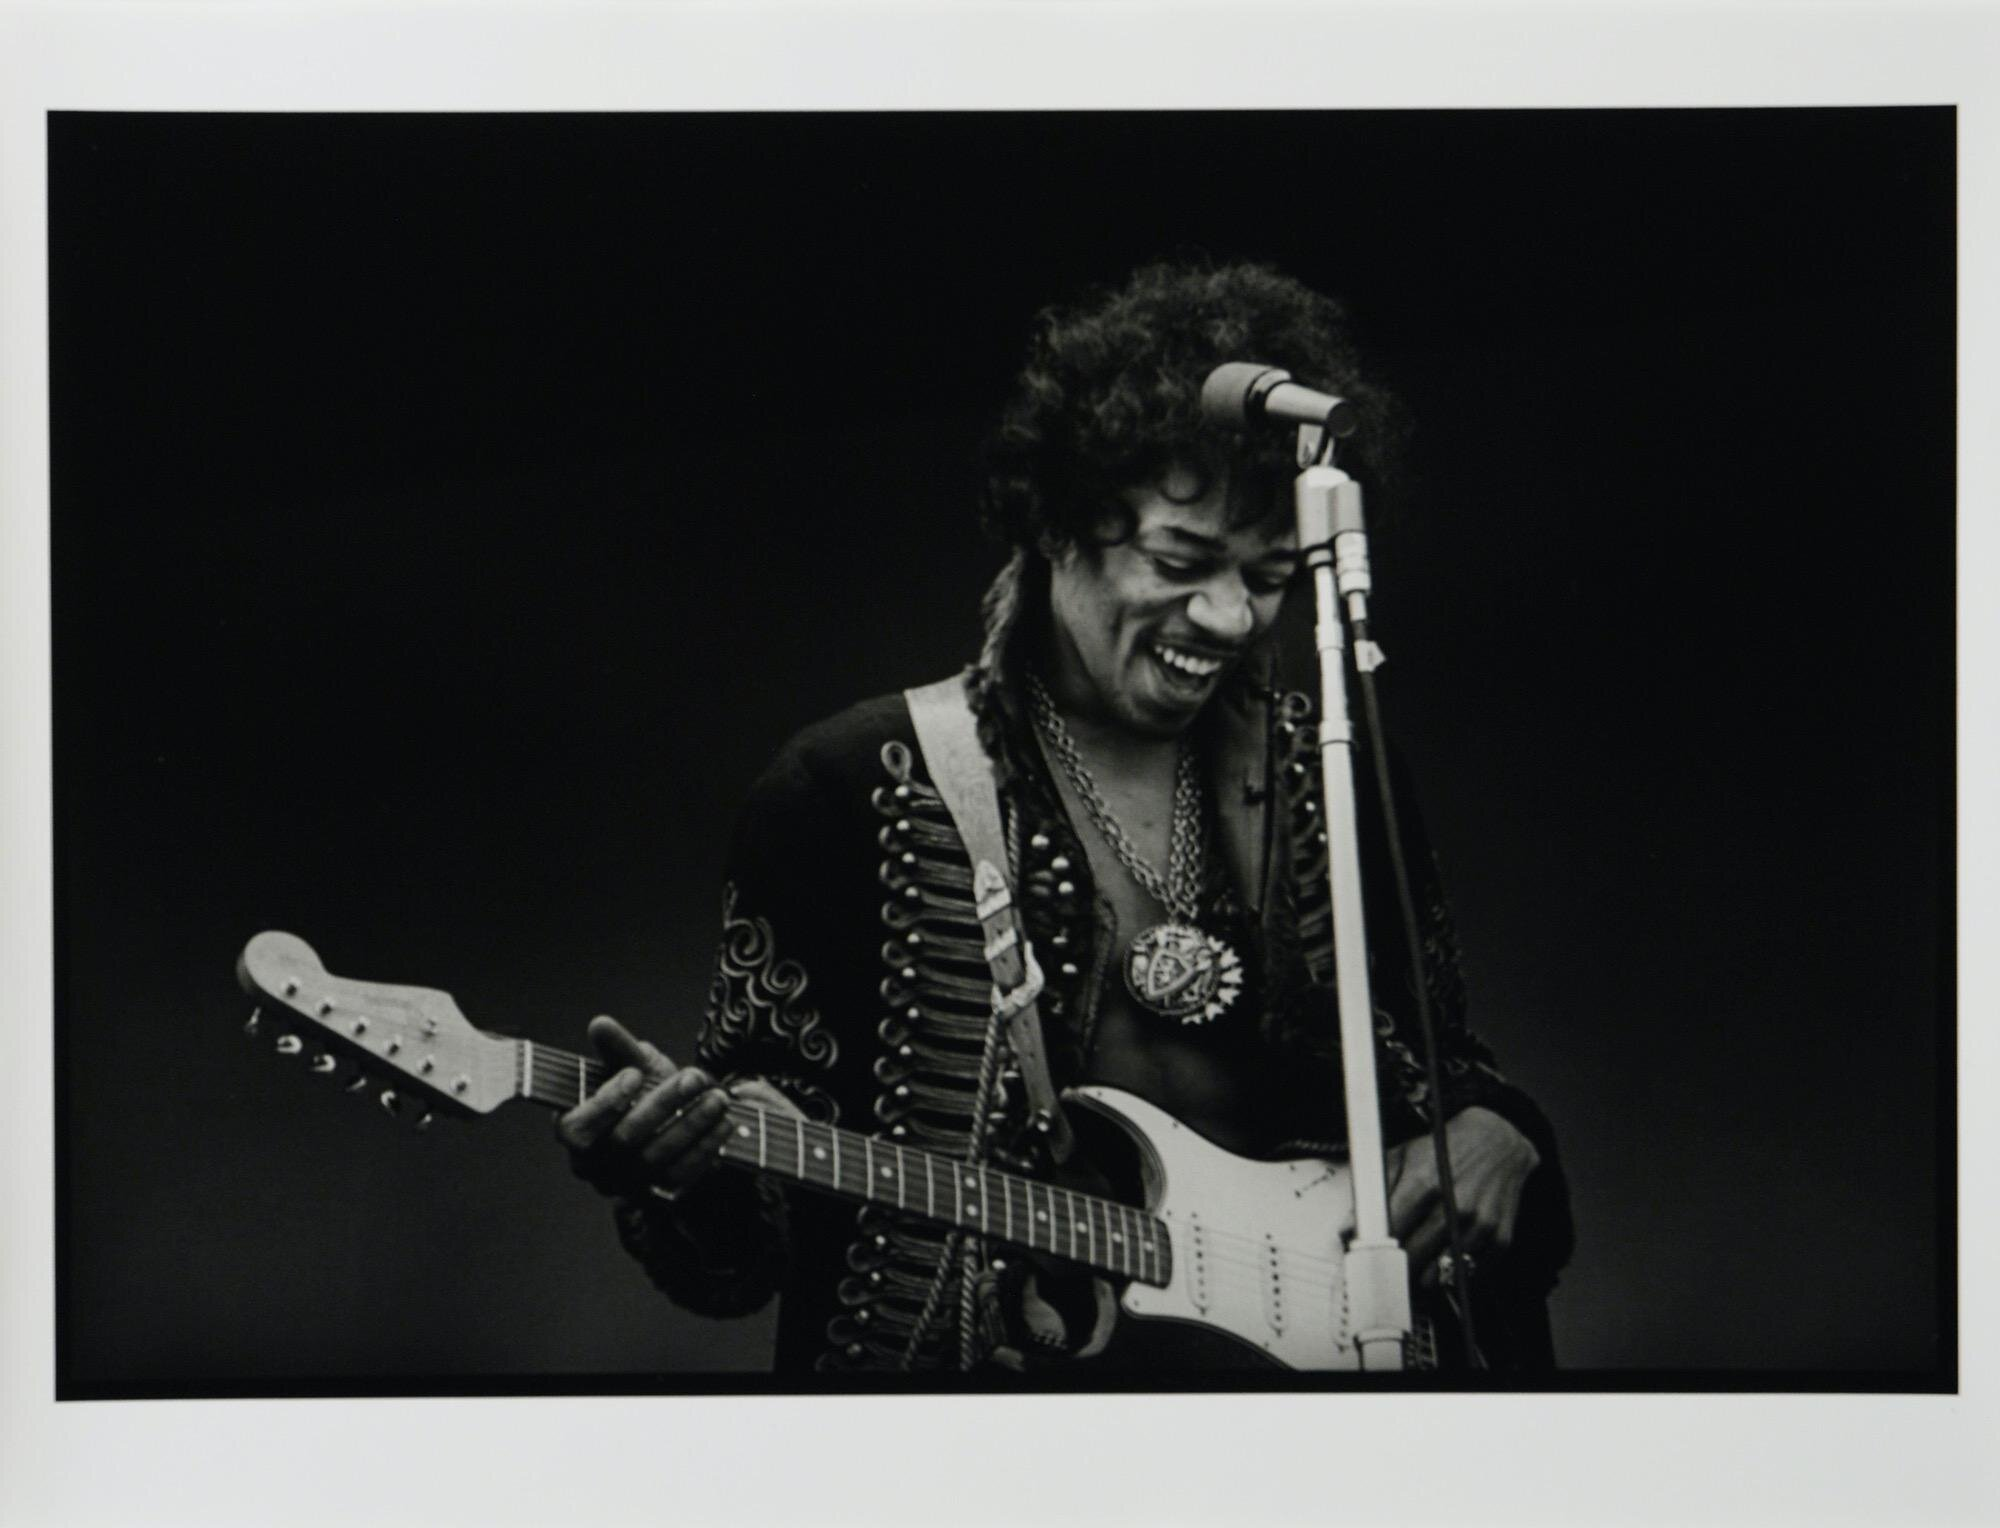 Jimi Hendrix at Monterey Pop Festival